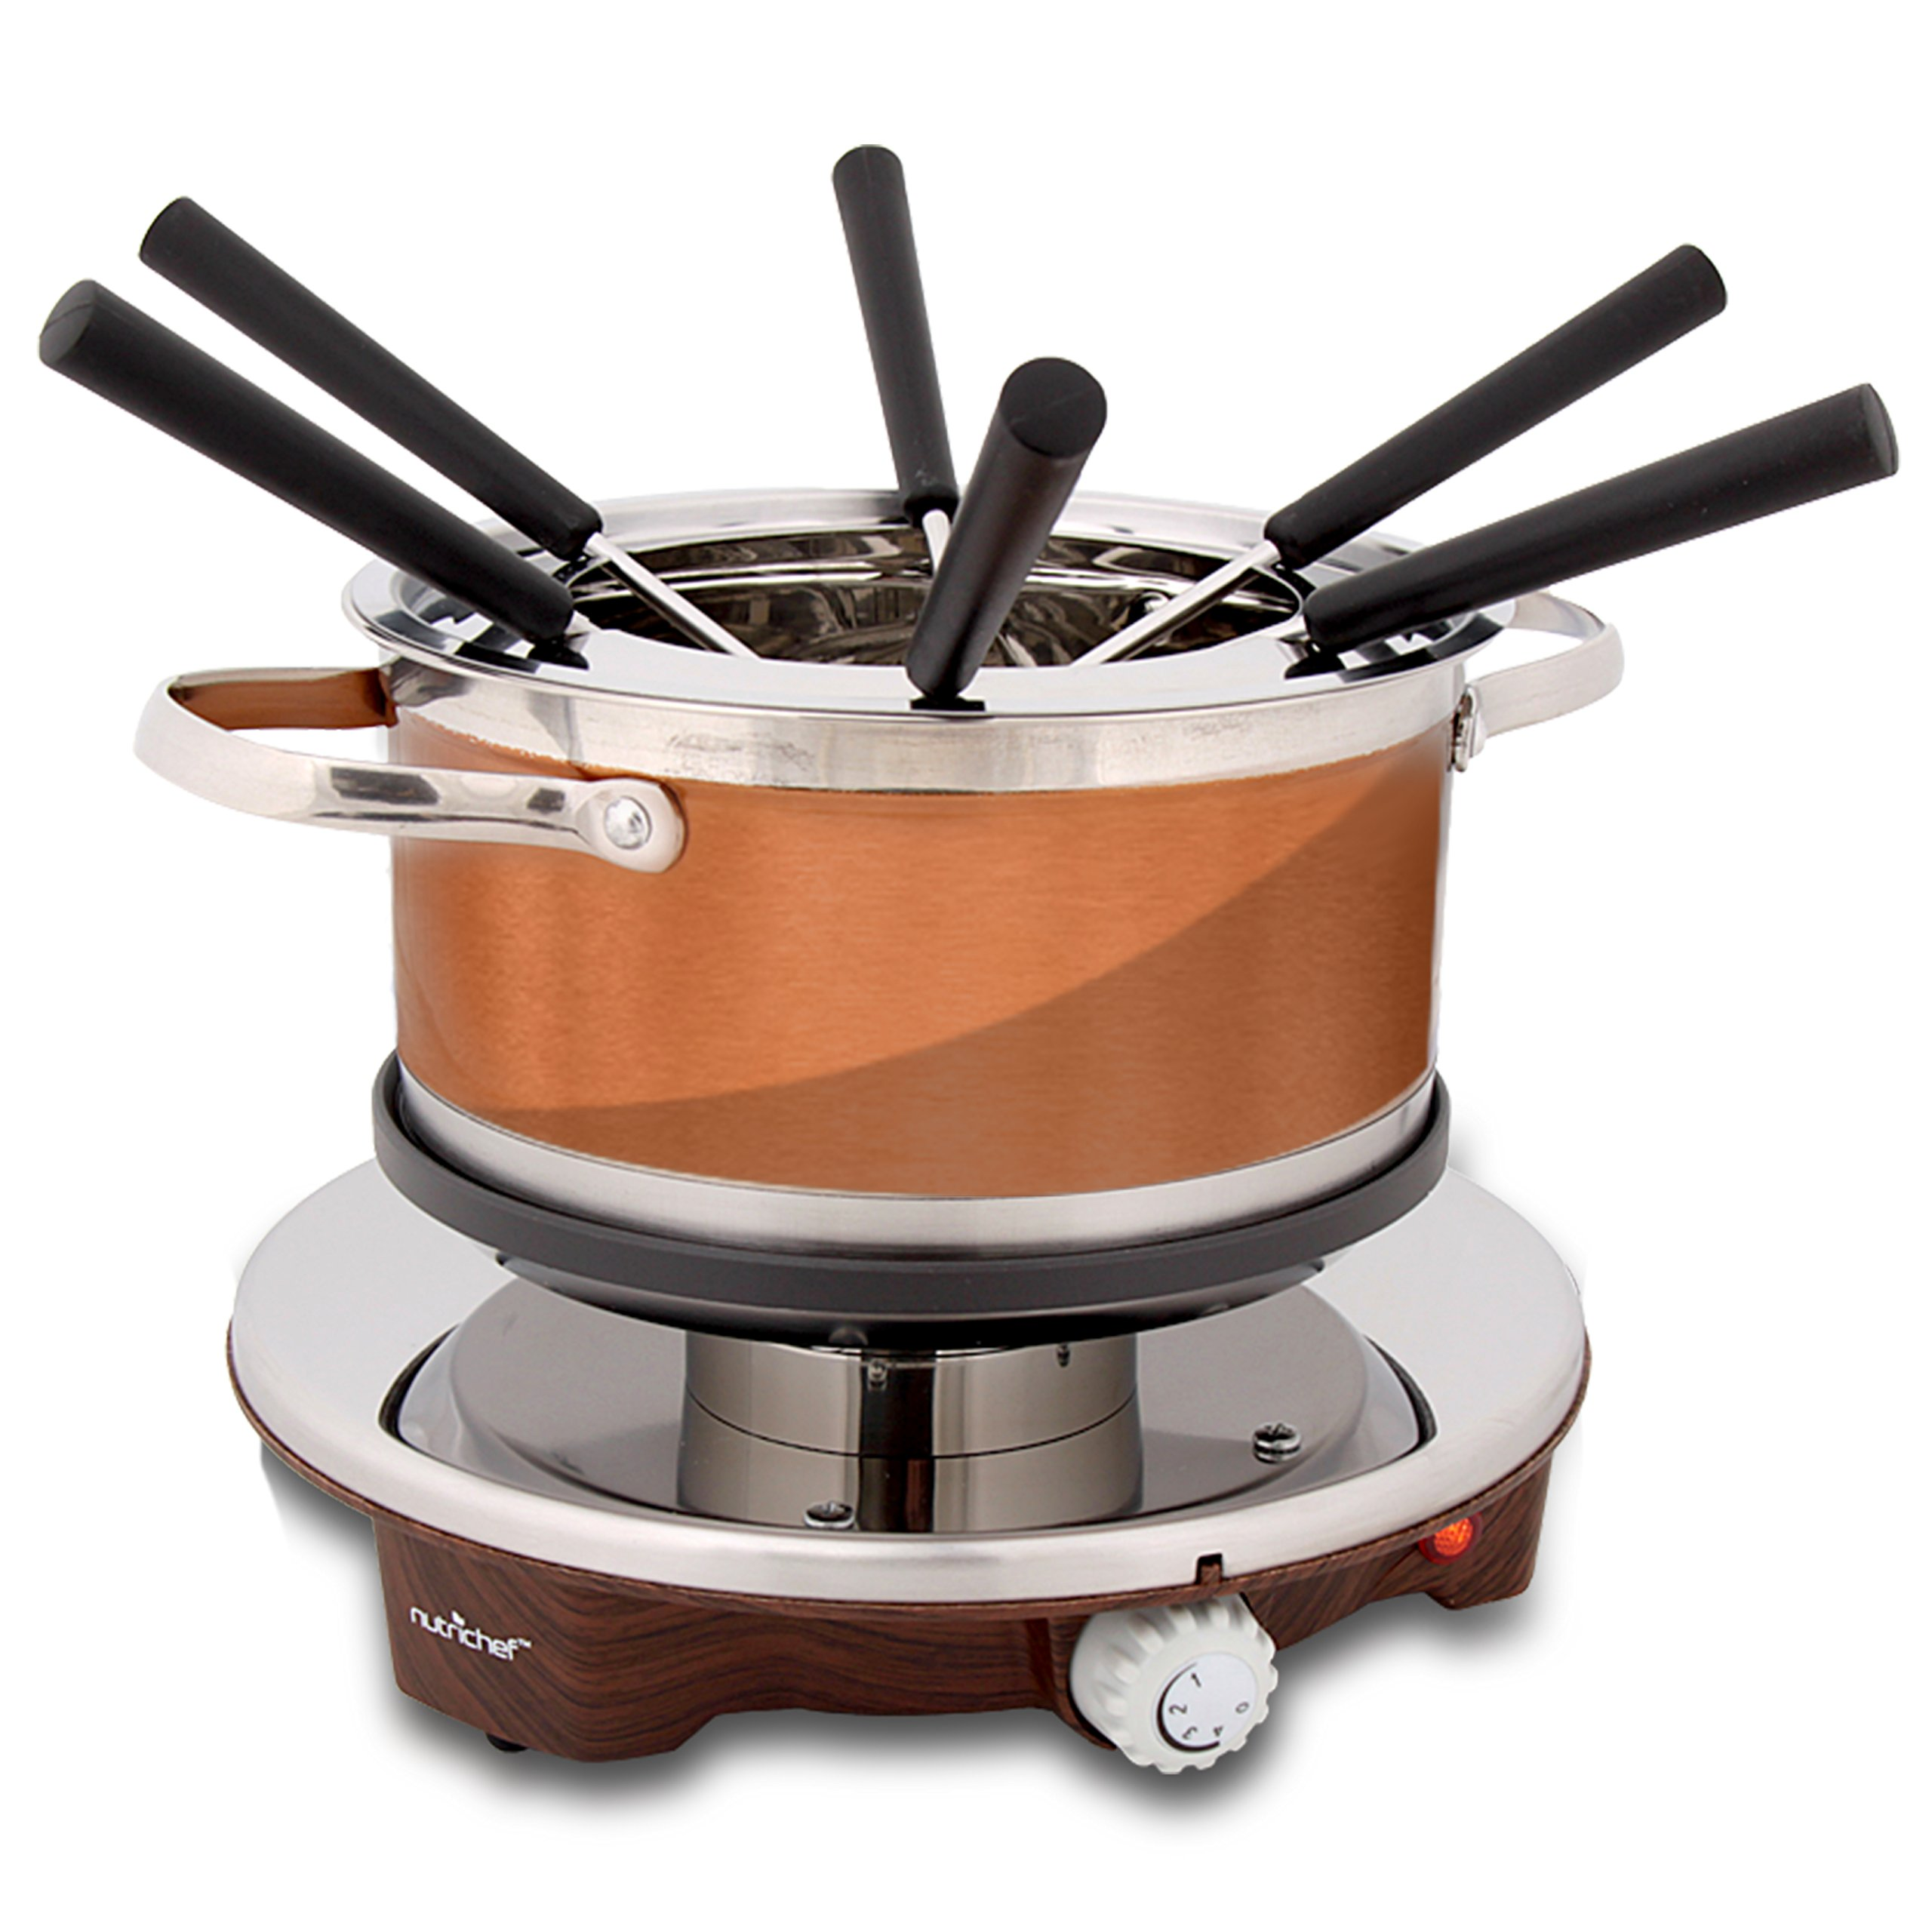 Electric Chocolate Fondue Maker Set - 1000W Warmer Machine Kit 1 Quart Nonstick Stainless Steel Melting Pot w/LED Light, 6 Dipping Forks, Melts Cheese Chocolate Candy Sauce Dip - NutriChef PKFNMK25